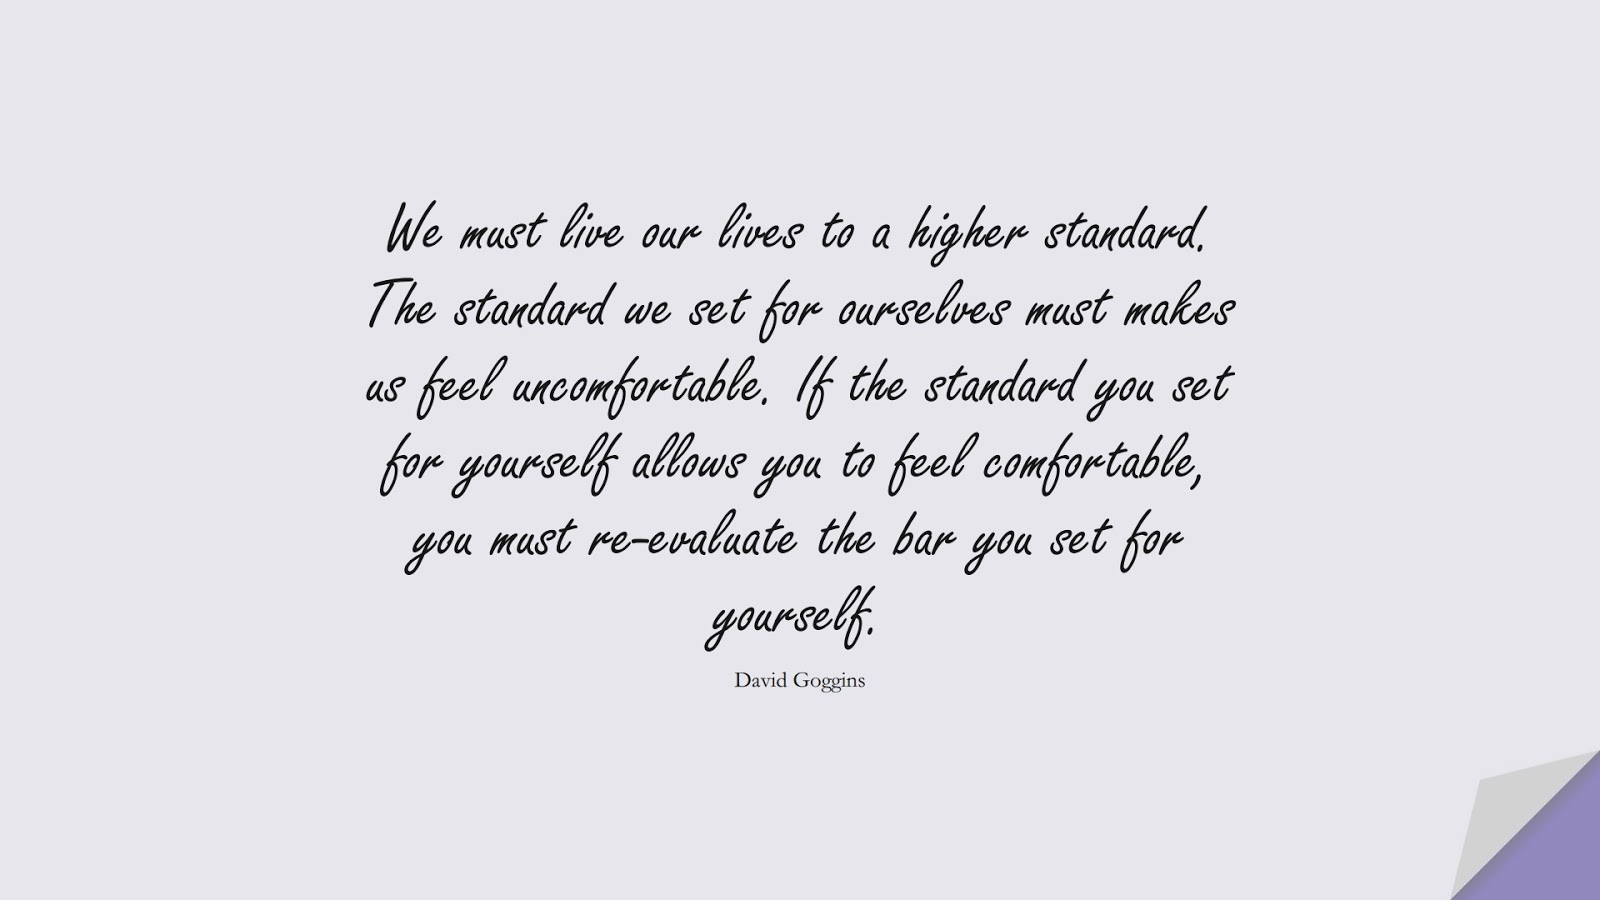 We must live our lives to a higher standard. The standard we set for ourselves must makes us feel uncomfortable. If the standard you set for yourself allows you to feel comfortable, you must re-evaluate the bar you set for yourself. (David Goggins);  #CharacterQuotes